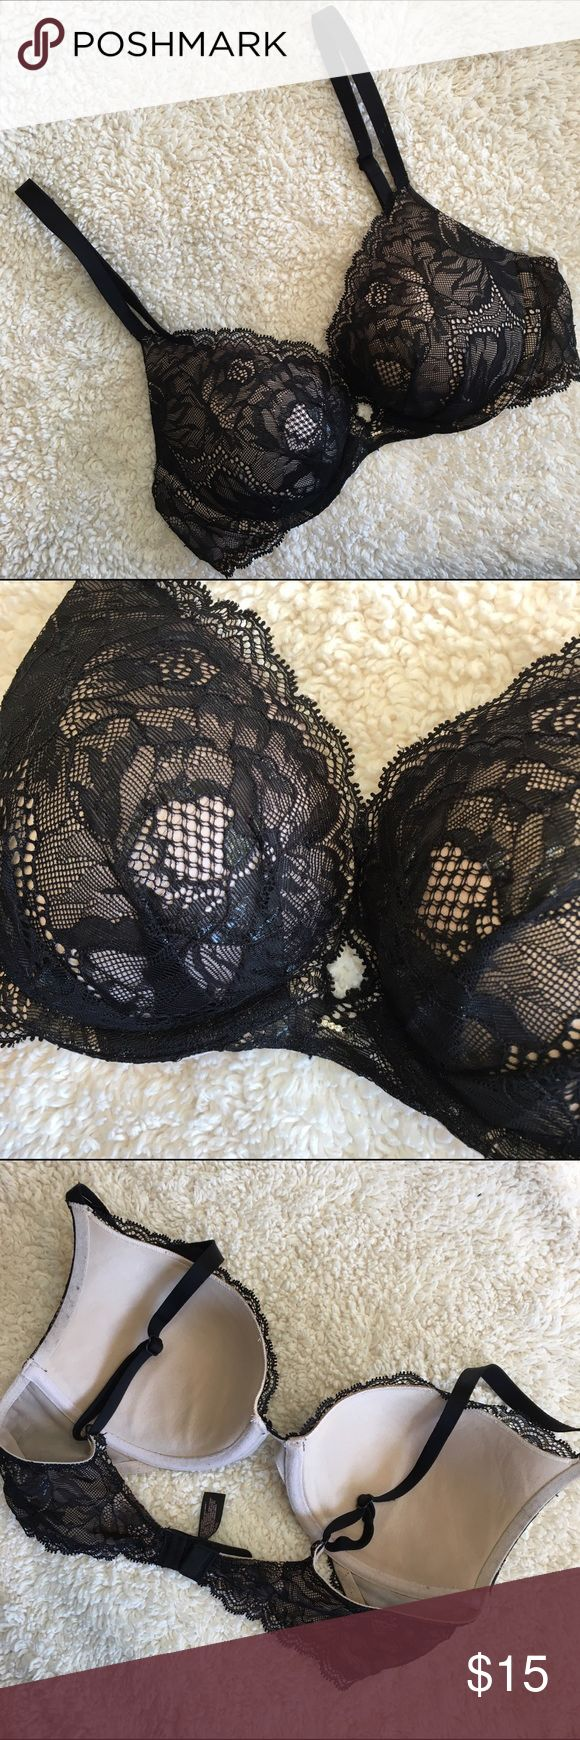 Victoria Secret - Plunge Victoria Secret Plunge Push Up Size 34C Has a jewel in the middle of cups very pretty lace overlay lightly worn condition PINK Victoria's Secret Intimates & Sleepwear Bras